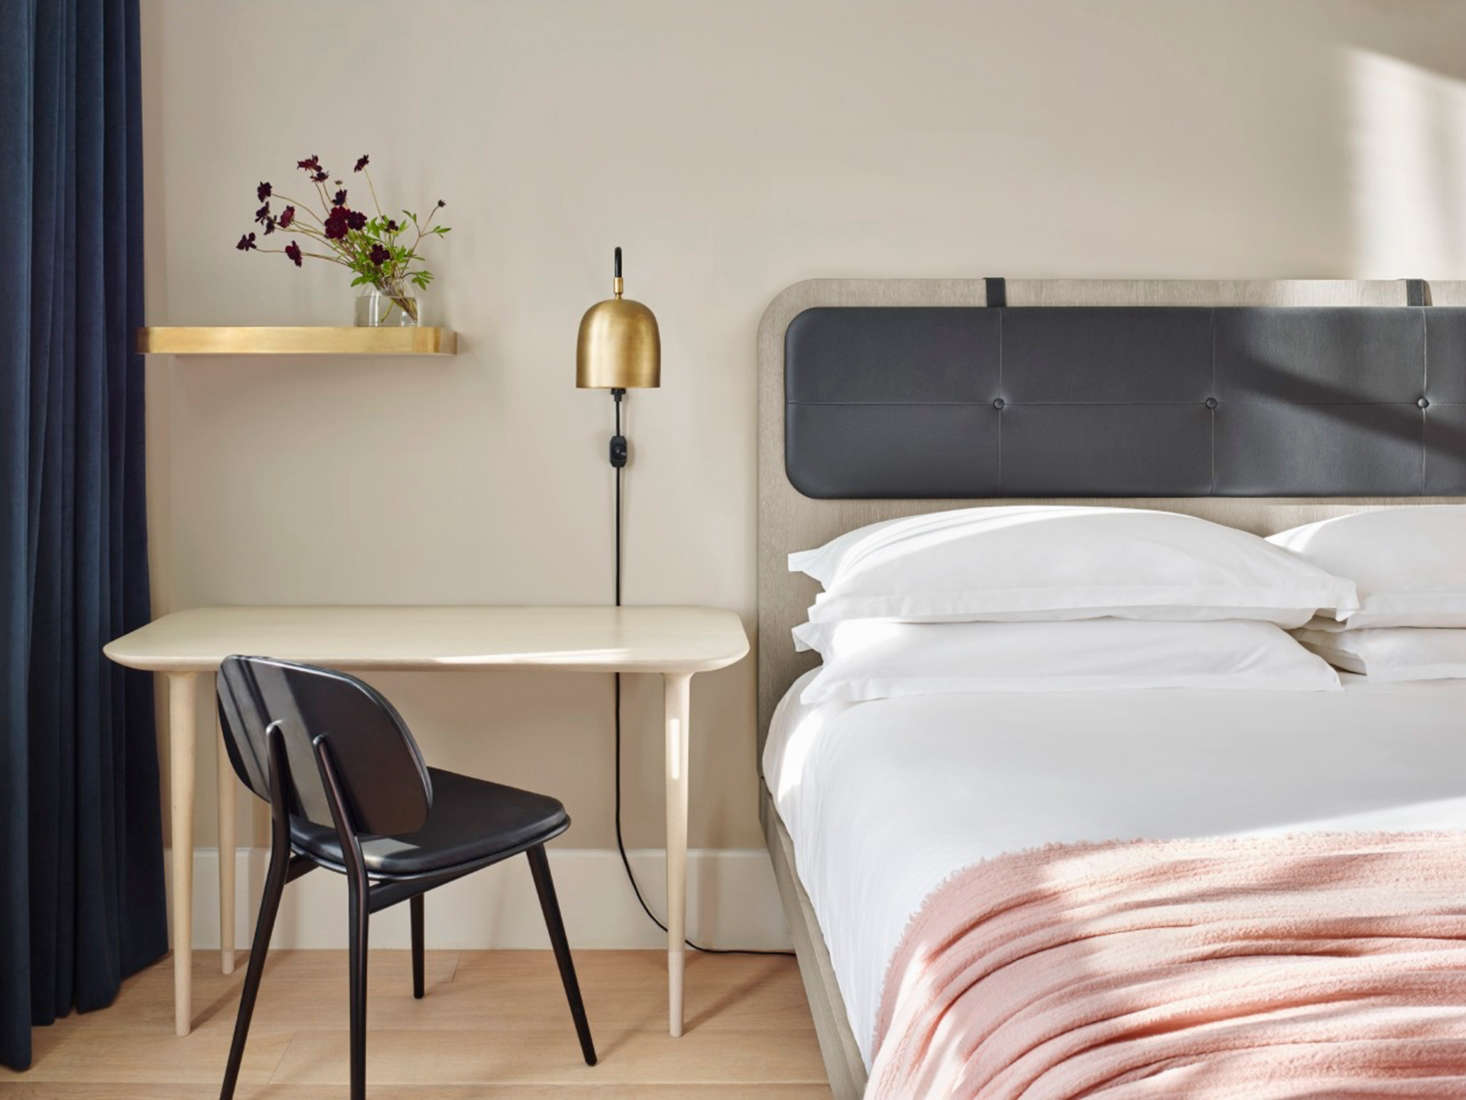 Steal This Look: A Scandi Bedroom in a SoHo Hotel